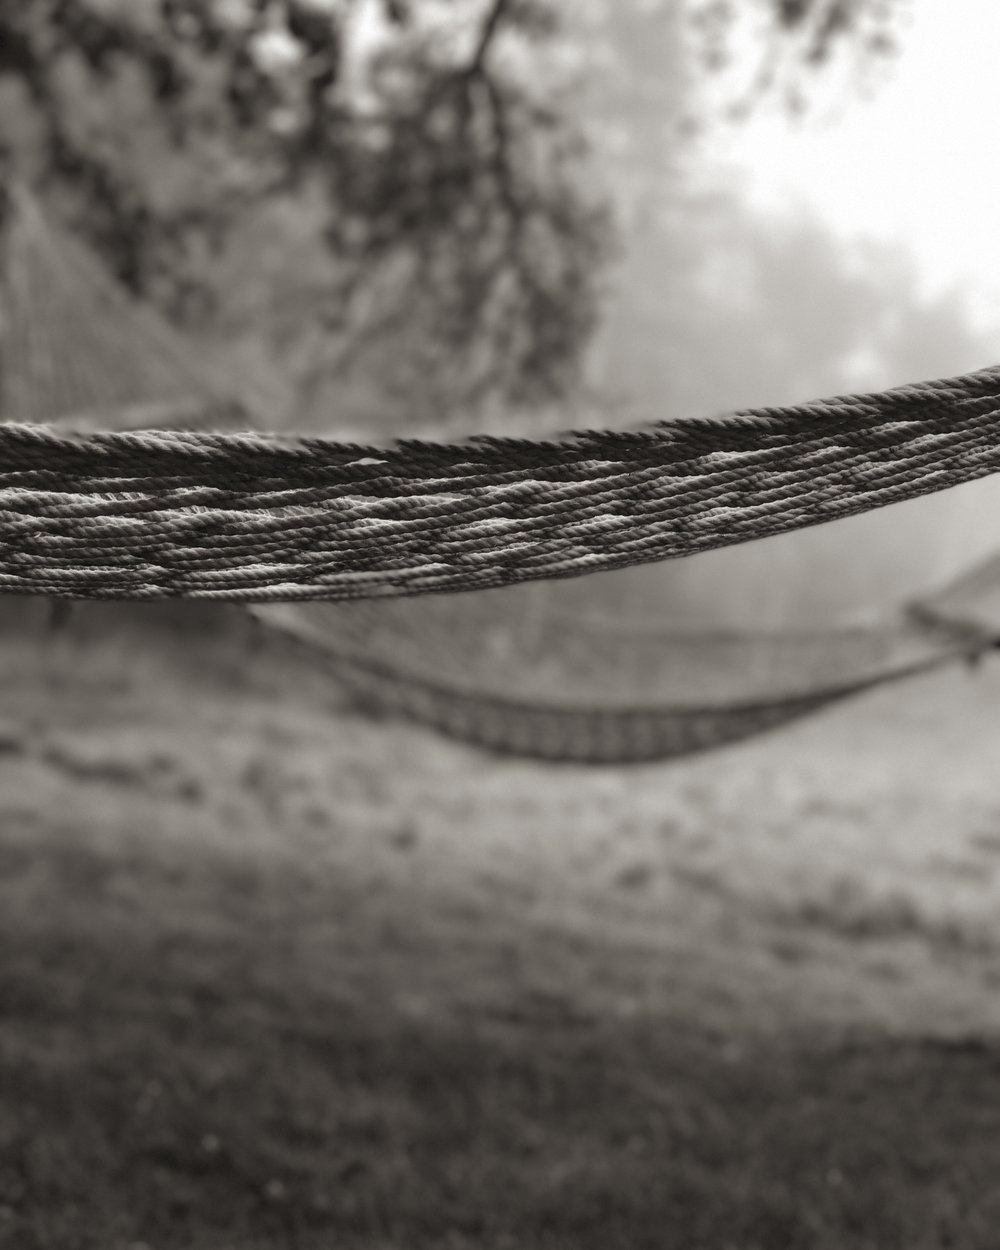 Hammocks in the Mist